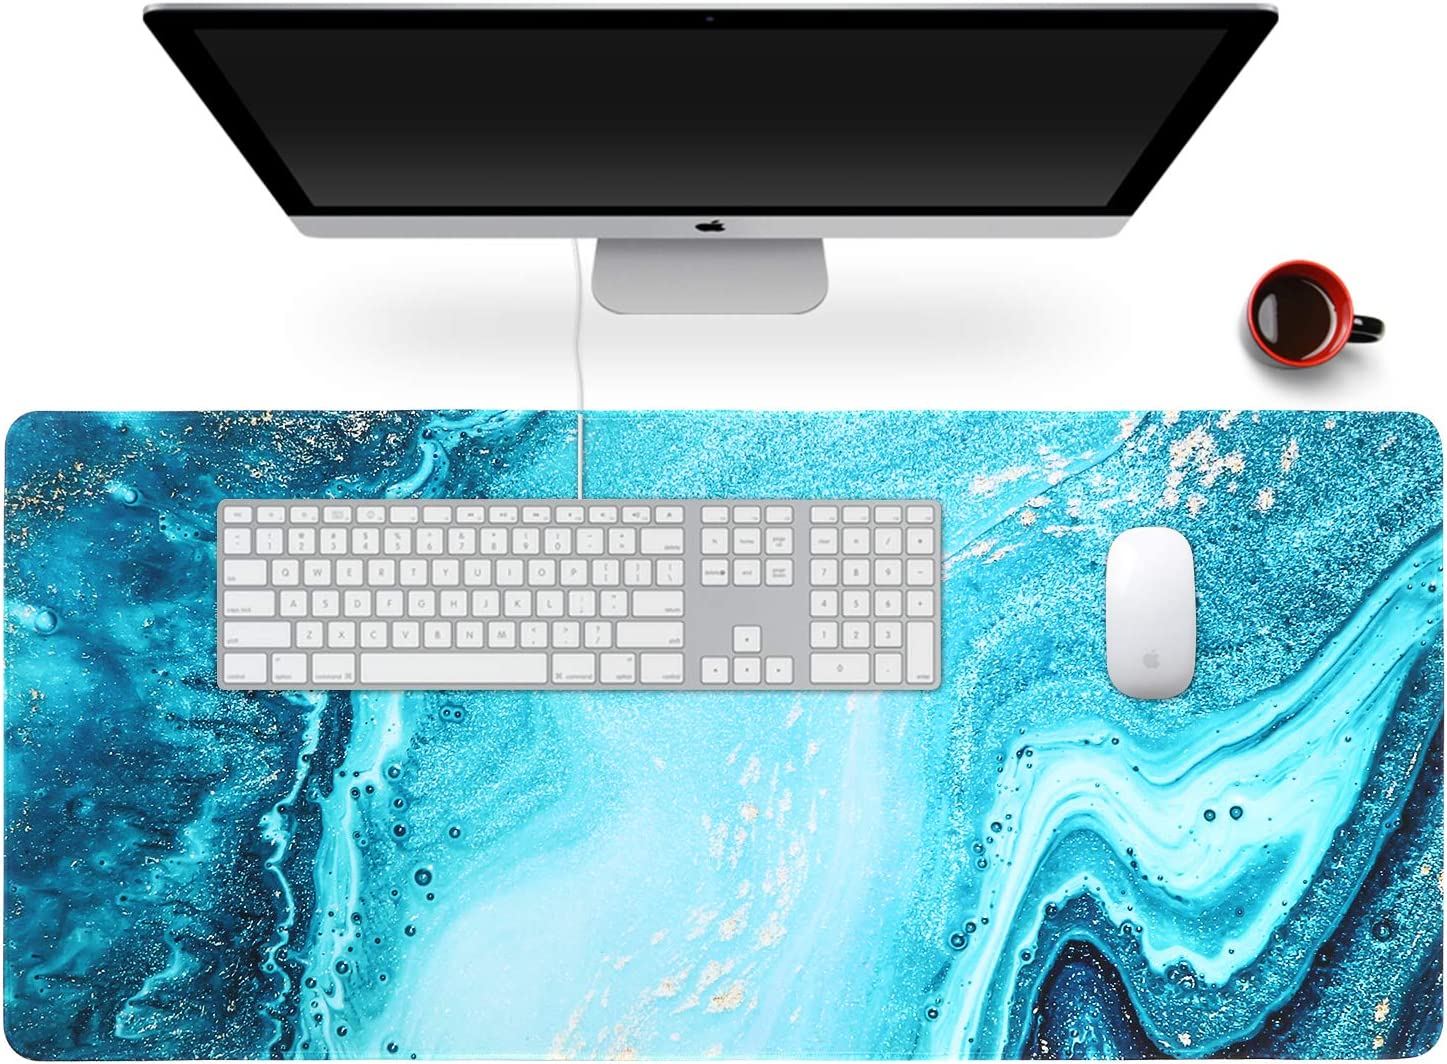 "Anyshock Desk Mat, Extended Gaming Mouse Pad 35.4"" x 15.7"" XXL Keyboard Laptop Mousepad with Stitched Edges Non Slip Base, Water-Resistant Computer Desk Pad for Office and Home (Teal Ocean Marble)"